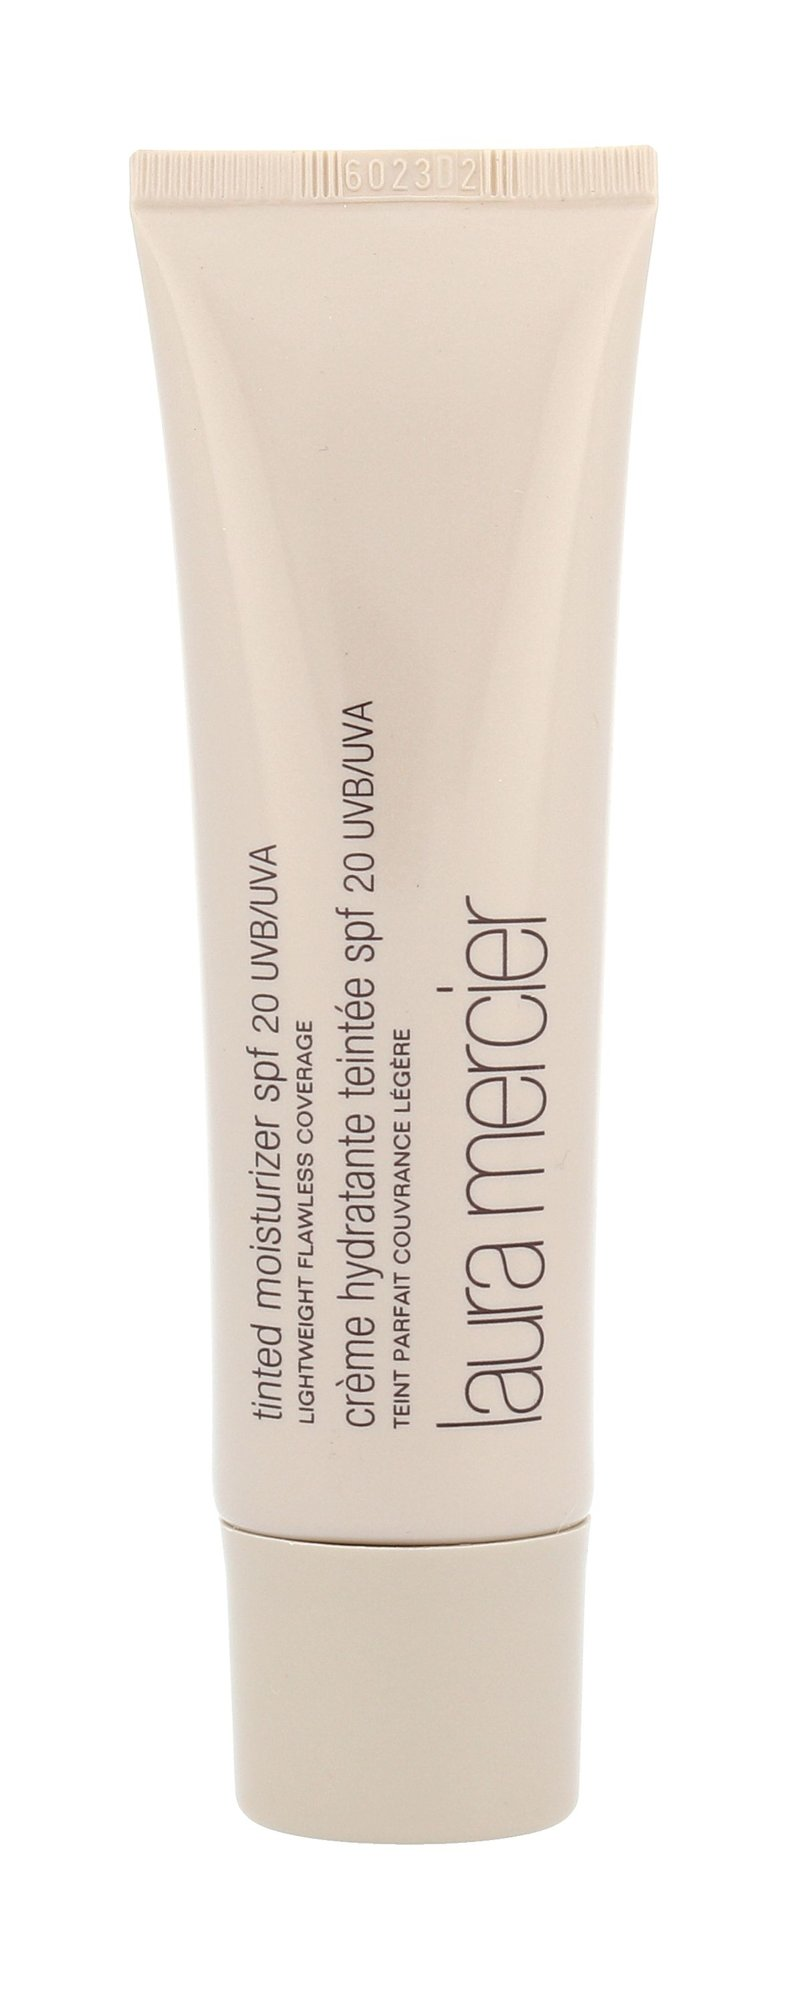 Laura Mercier Tinted Moisturizer Cosmetic 50ml Natural